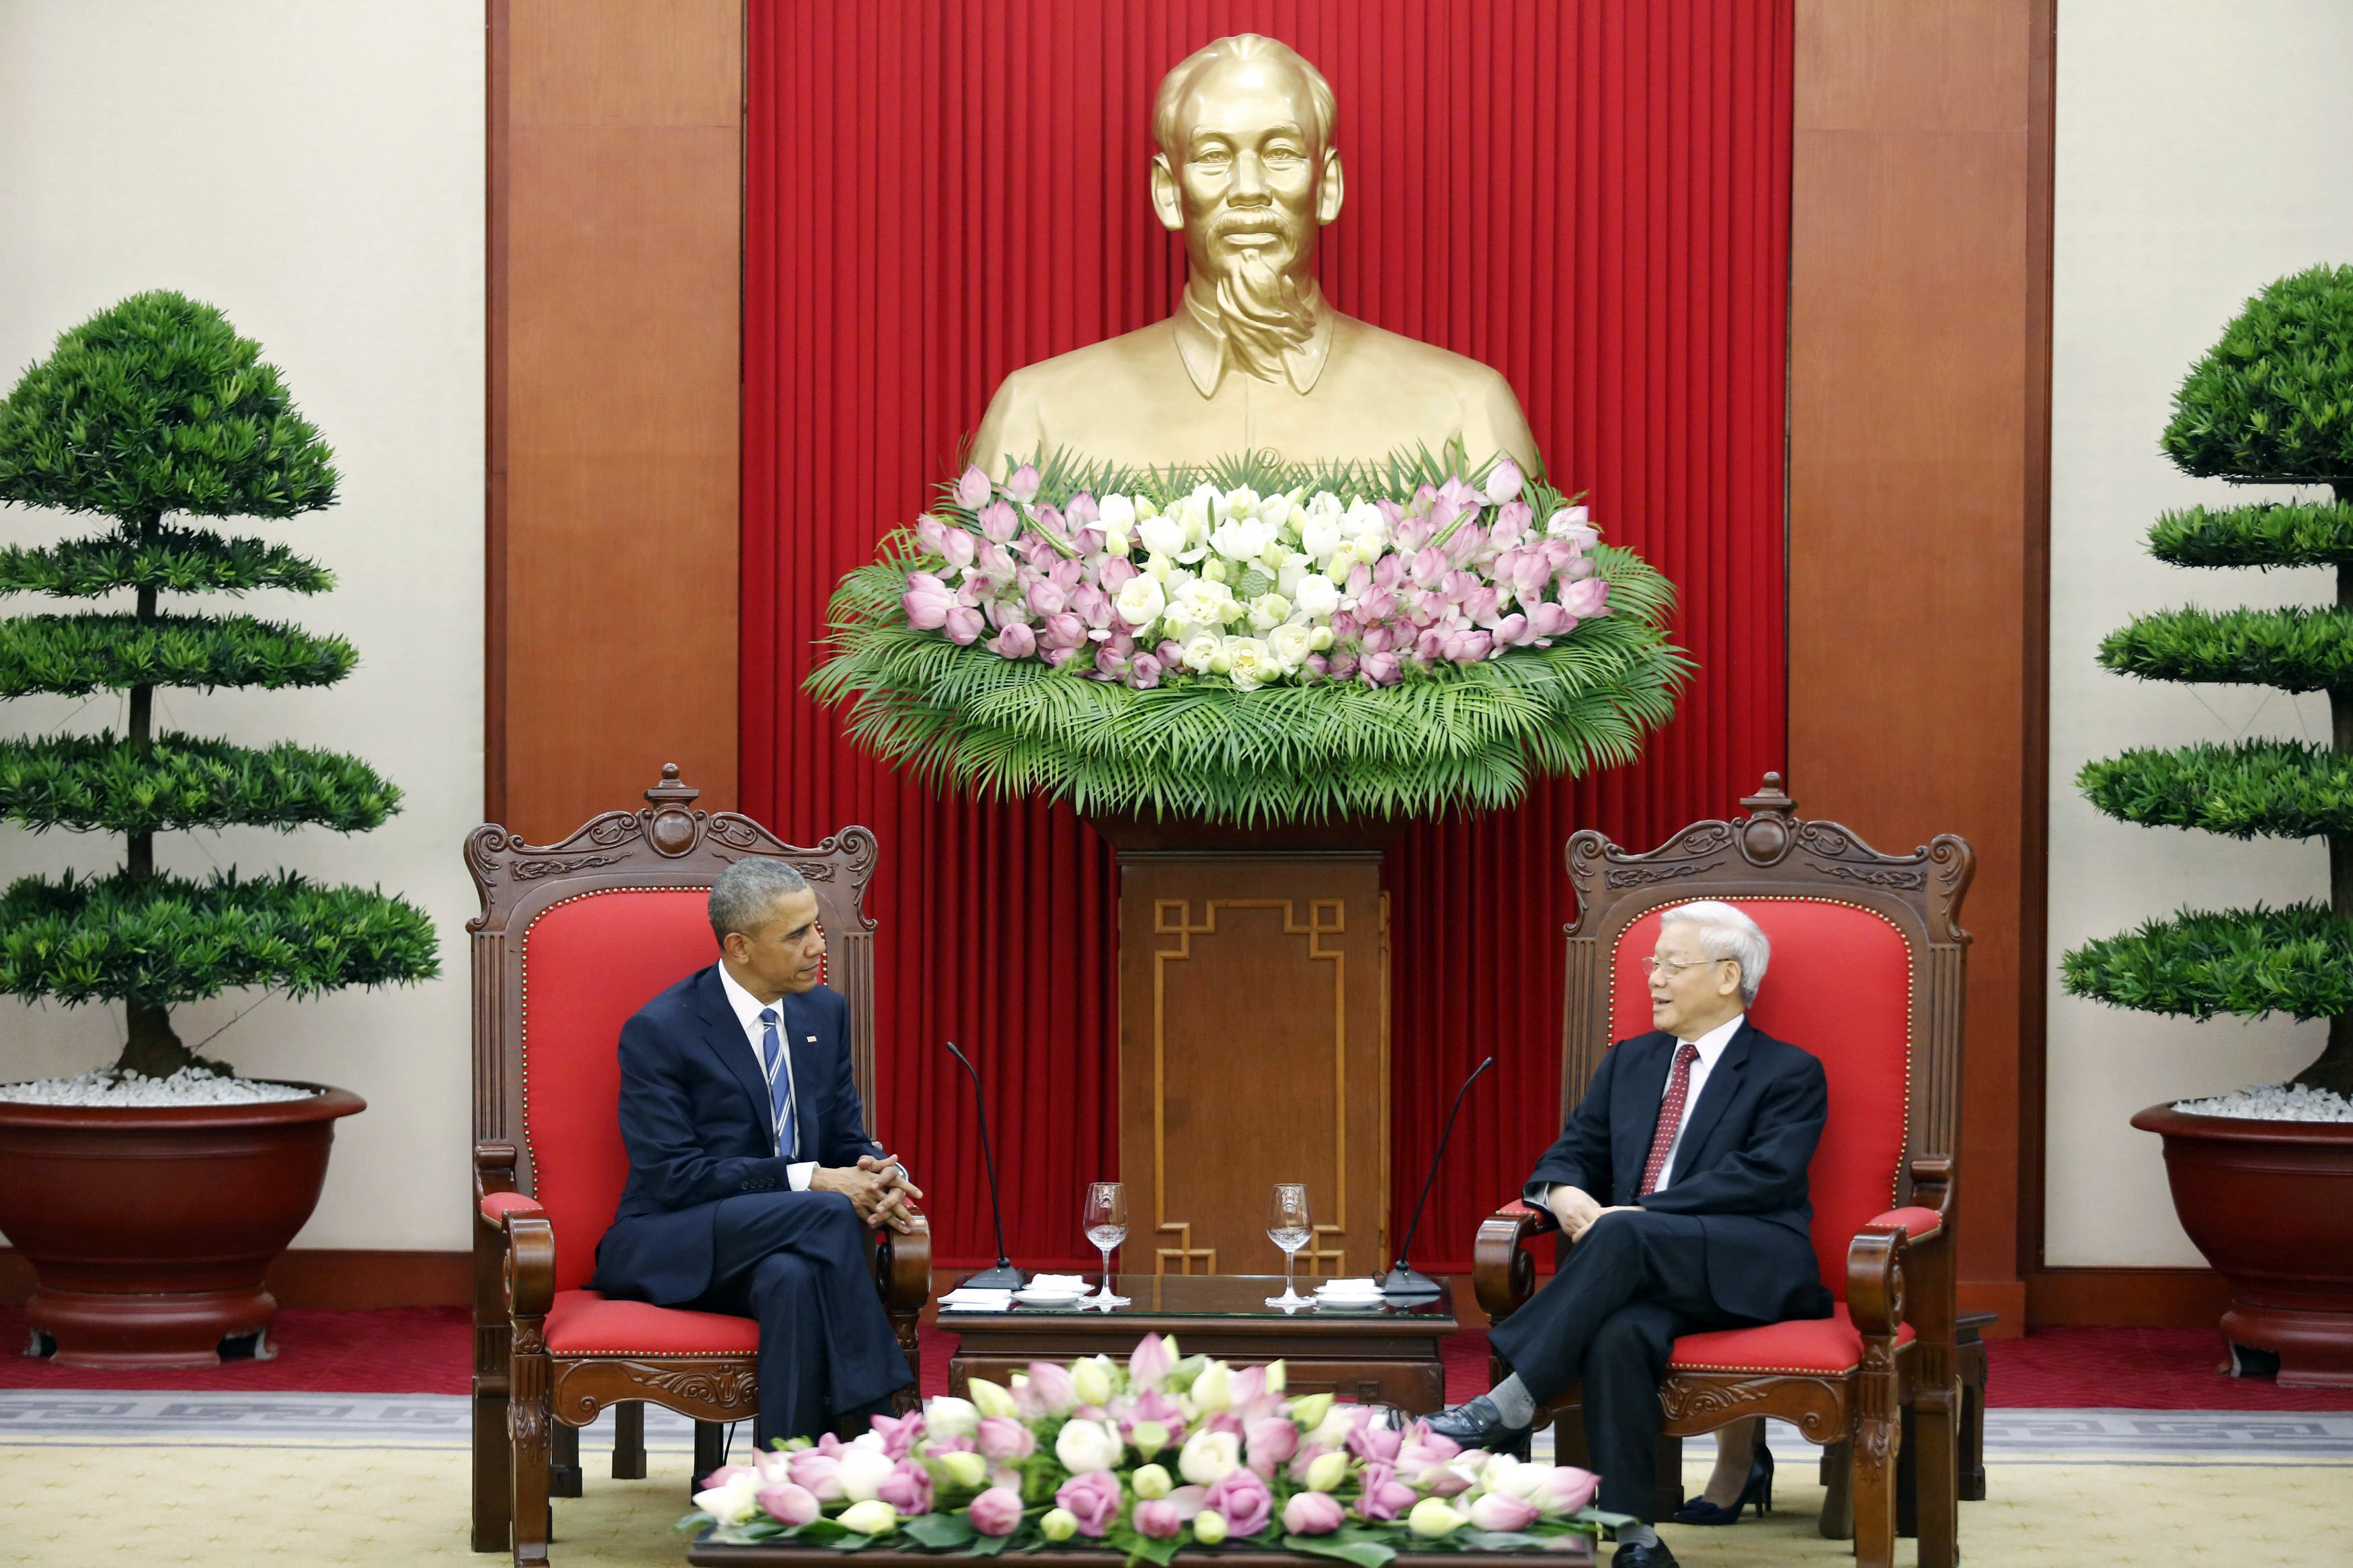 President Barack Obama and Vietnam's Communist Party General Secretary Nguyen Phu Trong speak in Hanoi, Vietnam, on May 23.